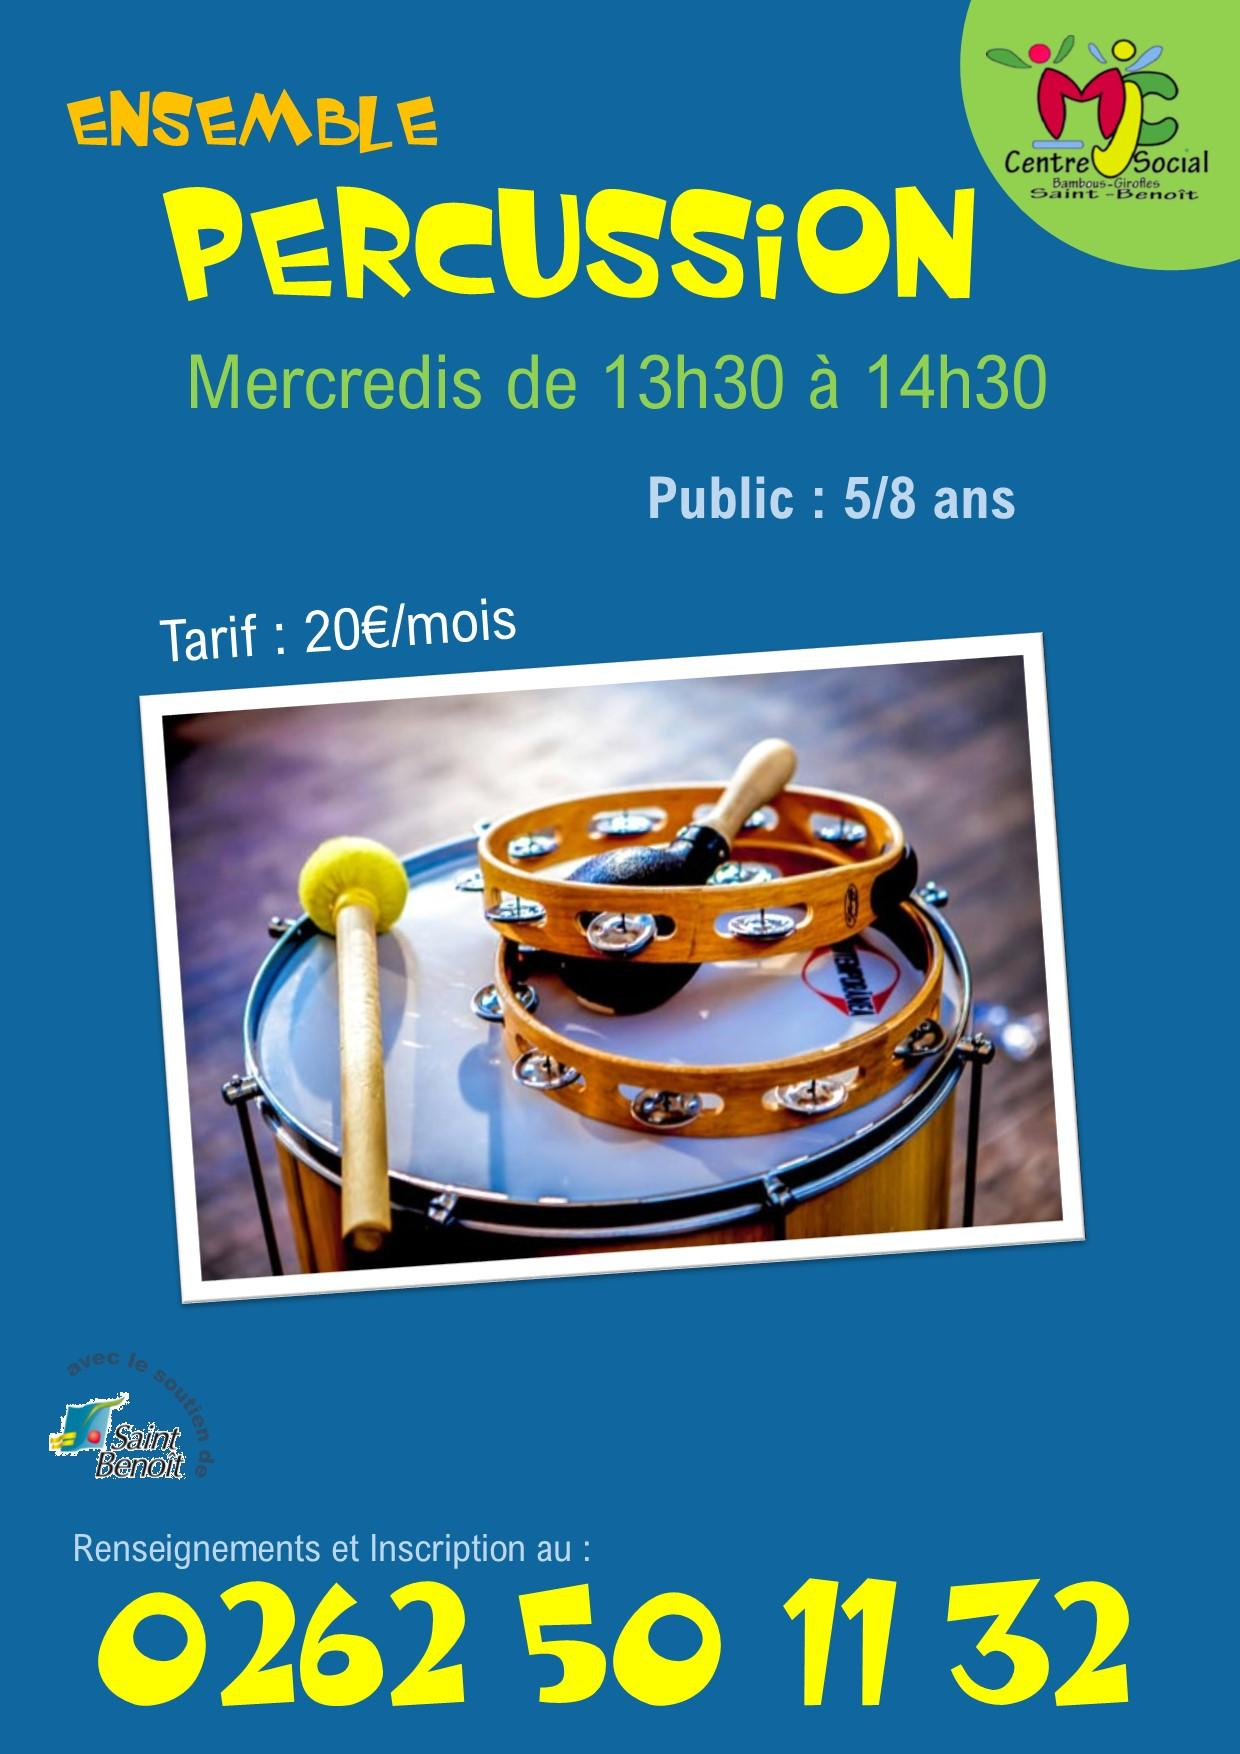 Ensemble percussion